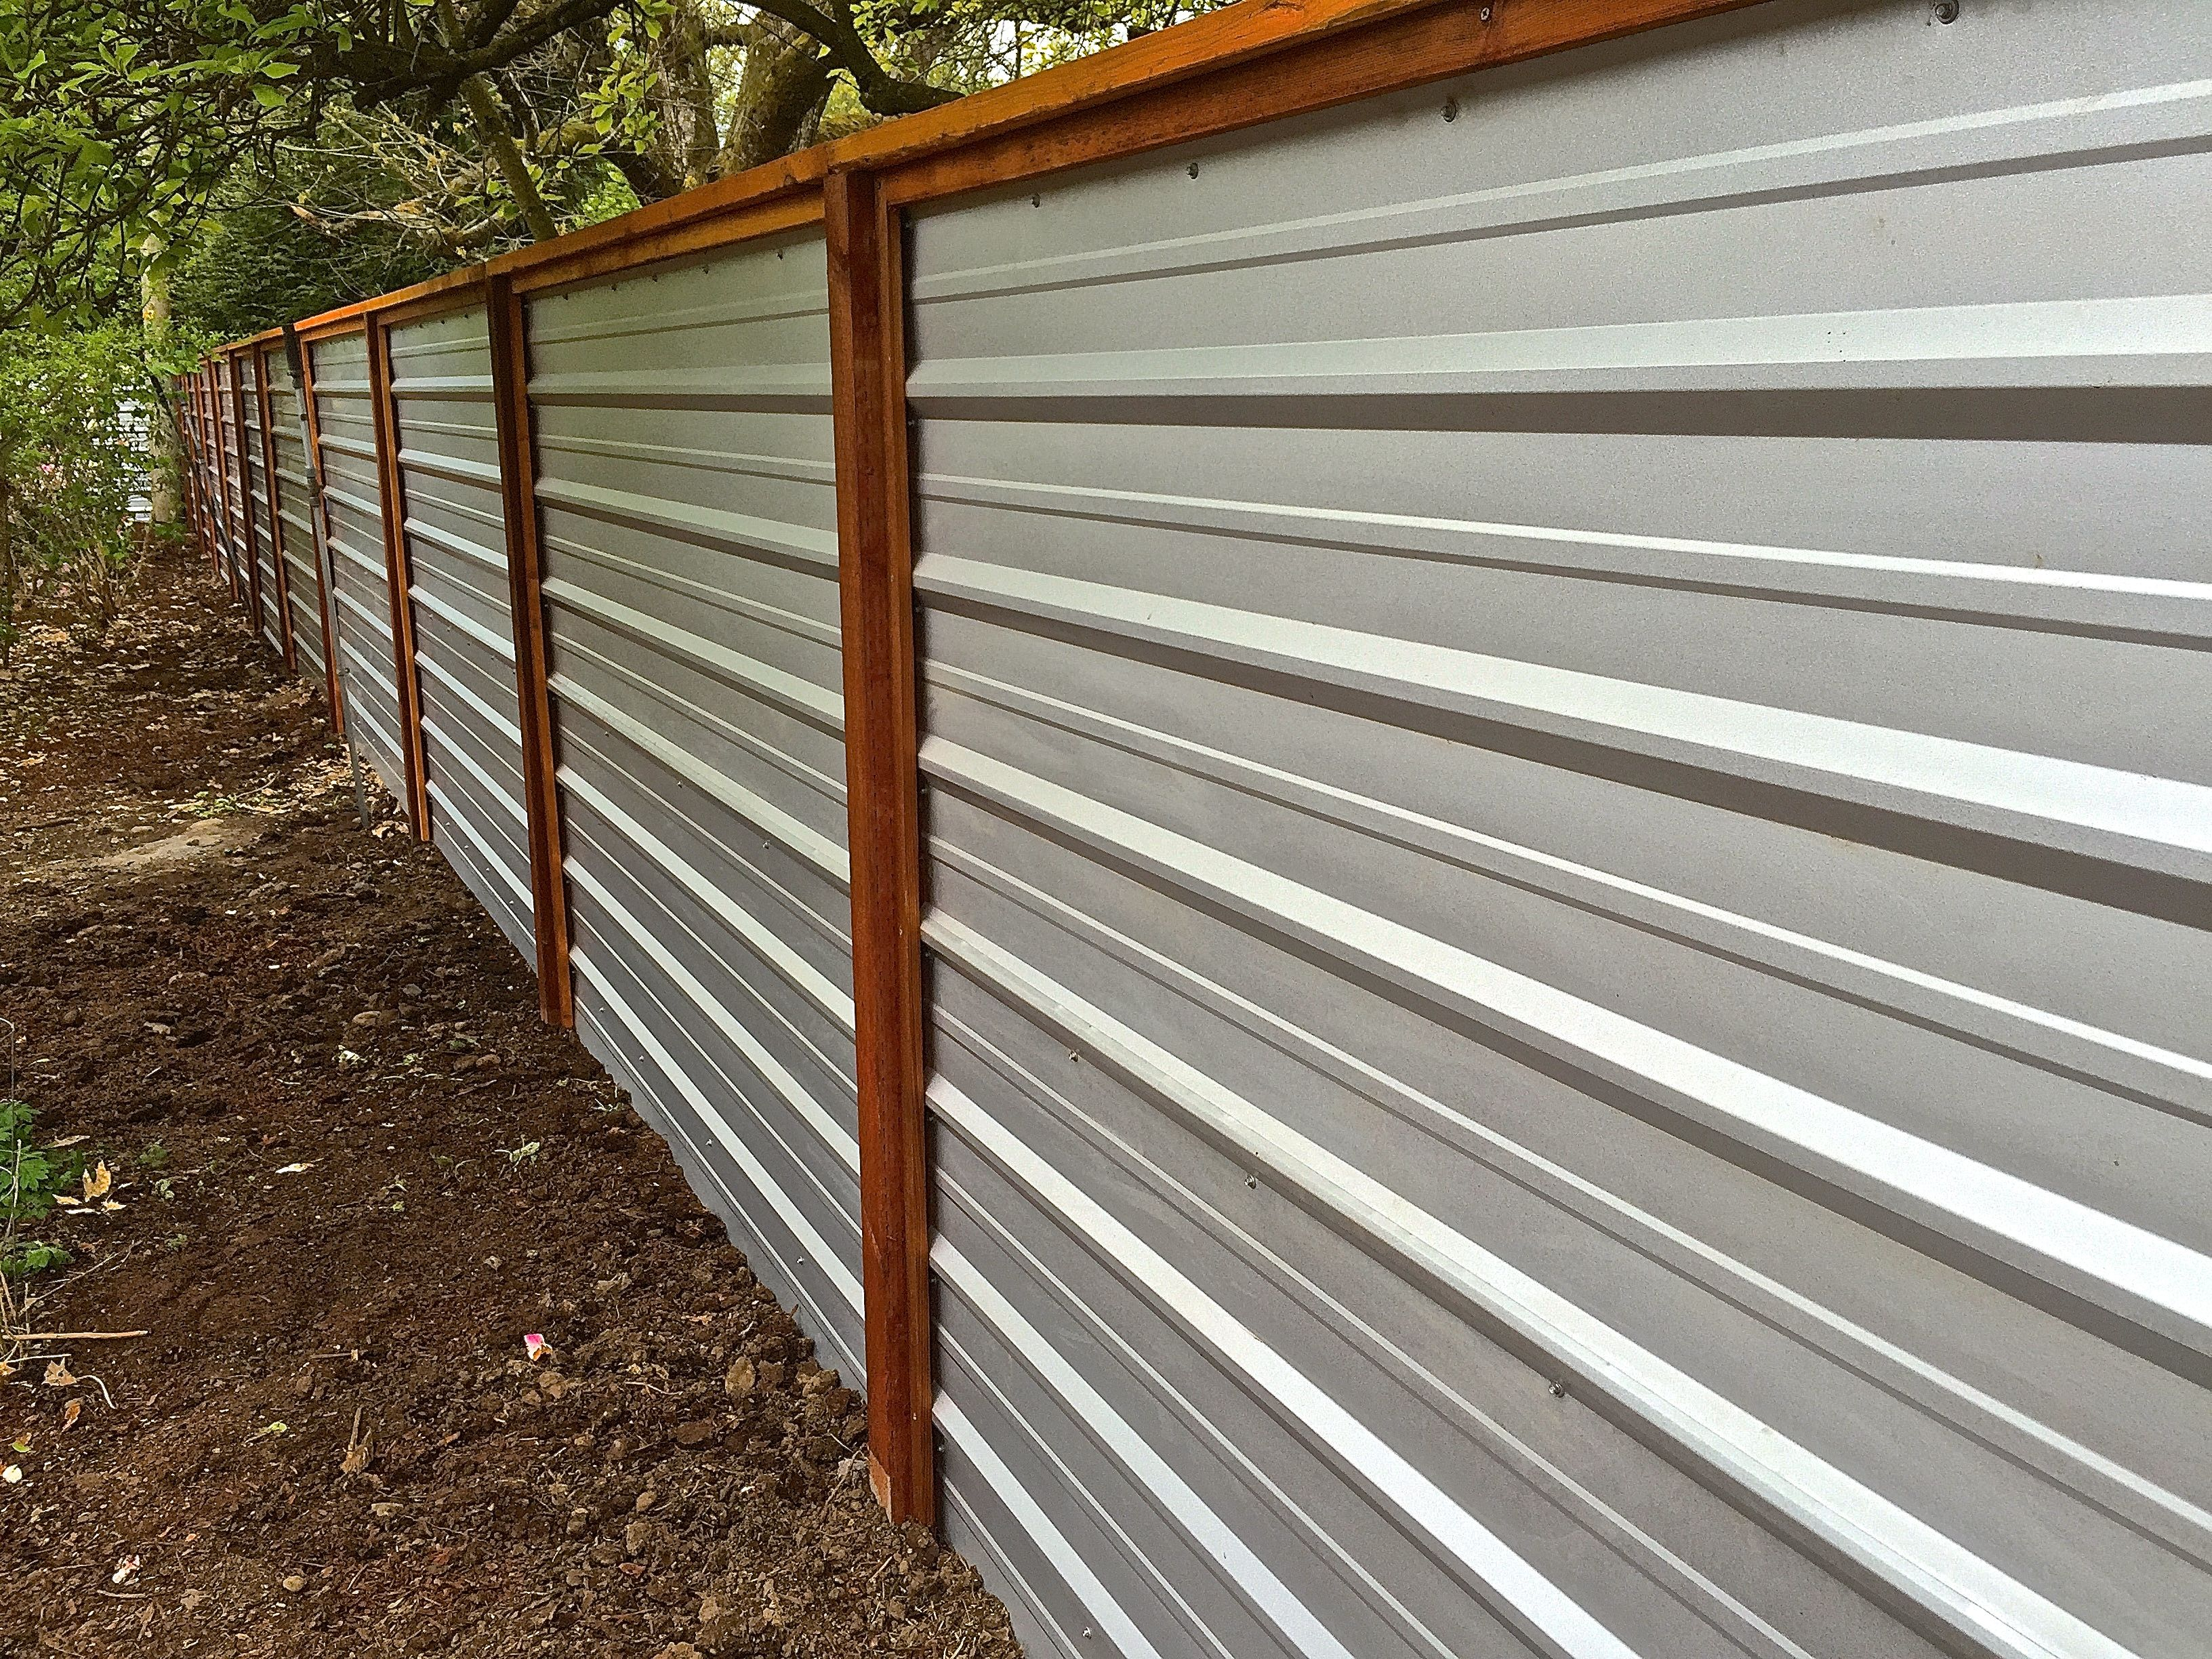 best 25+ metal fence ideas on pinterest | corrugated metal fence